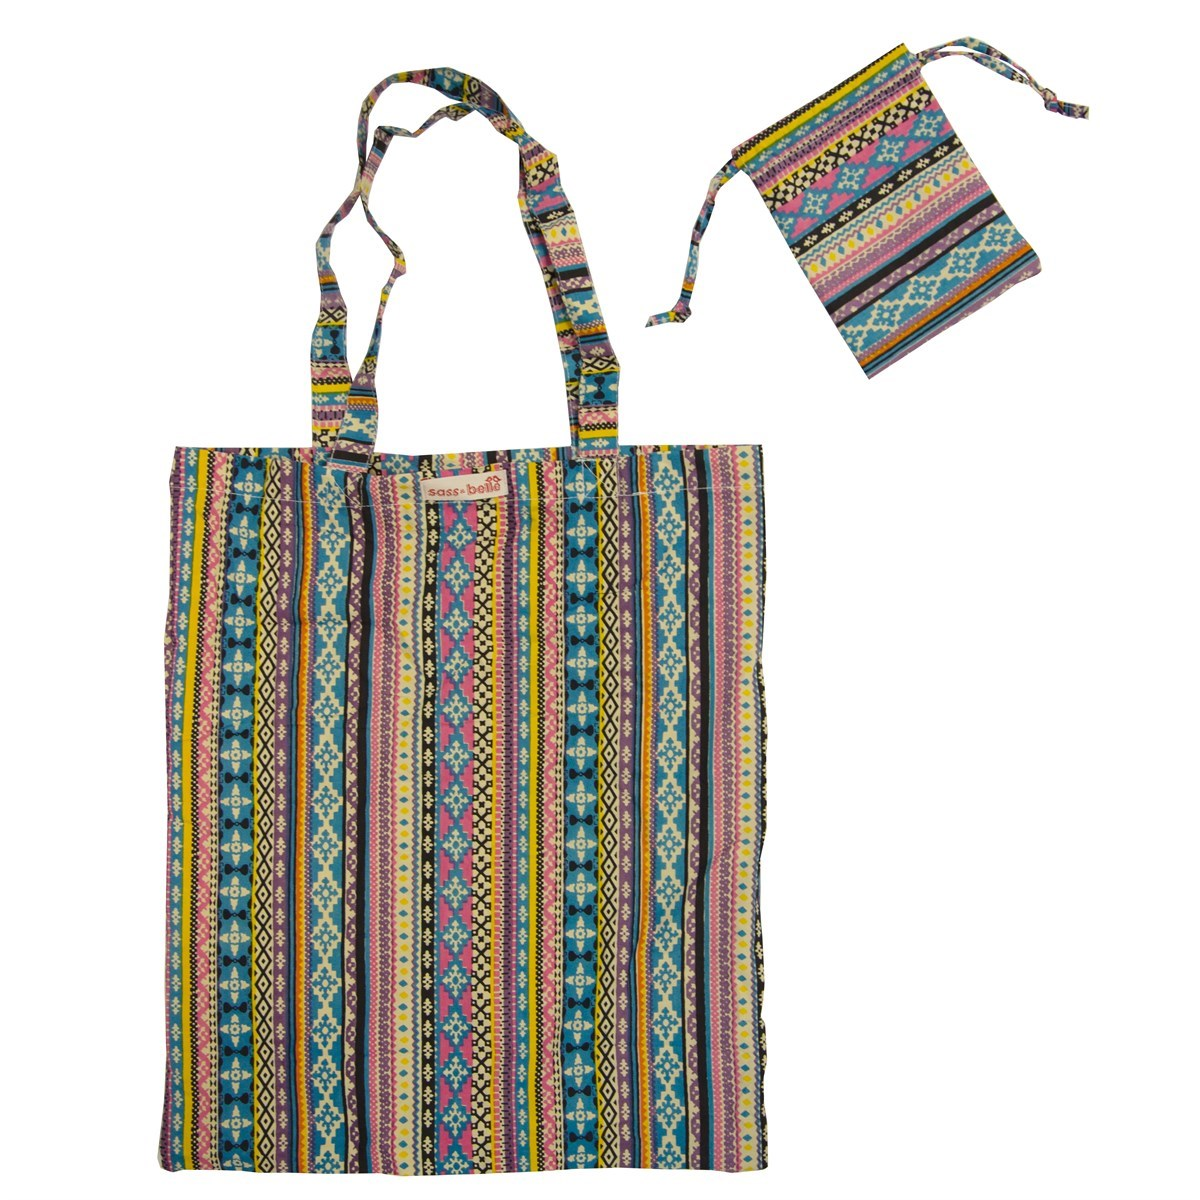 Sass /& Belle Fabric Foldable Shopping Bags rainbow design Tote Bag